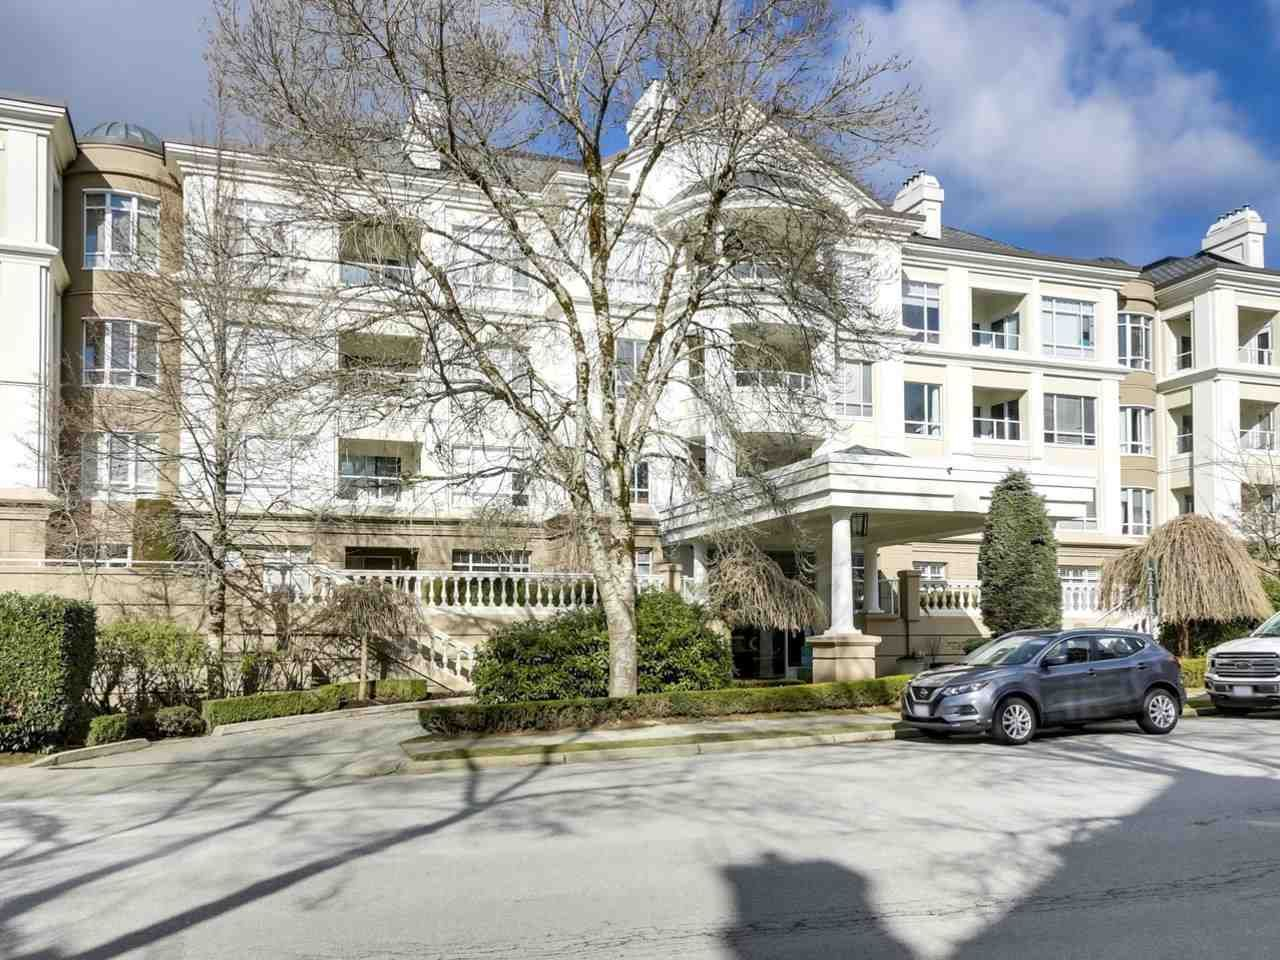 """Main Photo: 432 5735 HAMPTON Place in Vancouver: University VW Condo for sale in """"The Bristol"""" (Vancouver West)  : MLS®# R2541158"""